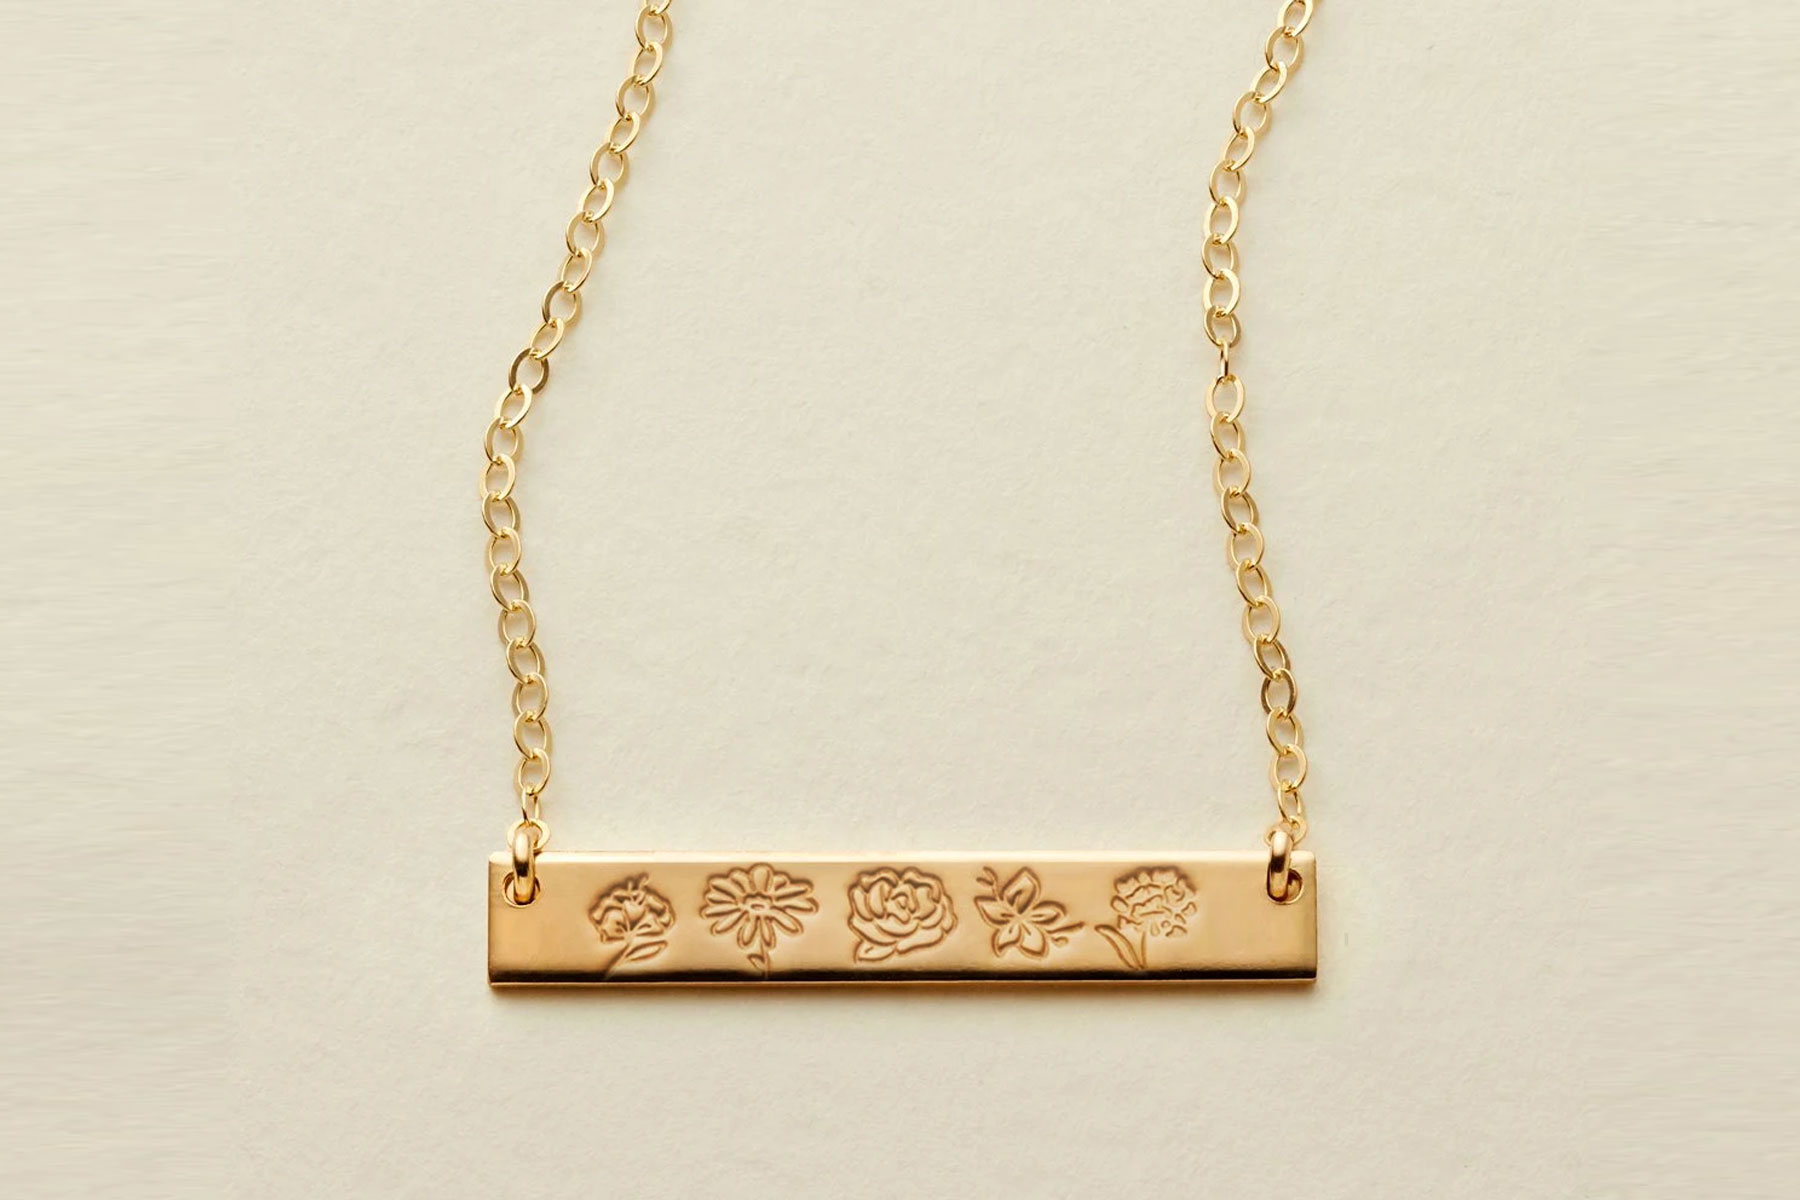 Gold bar necklace with flowers